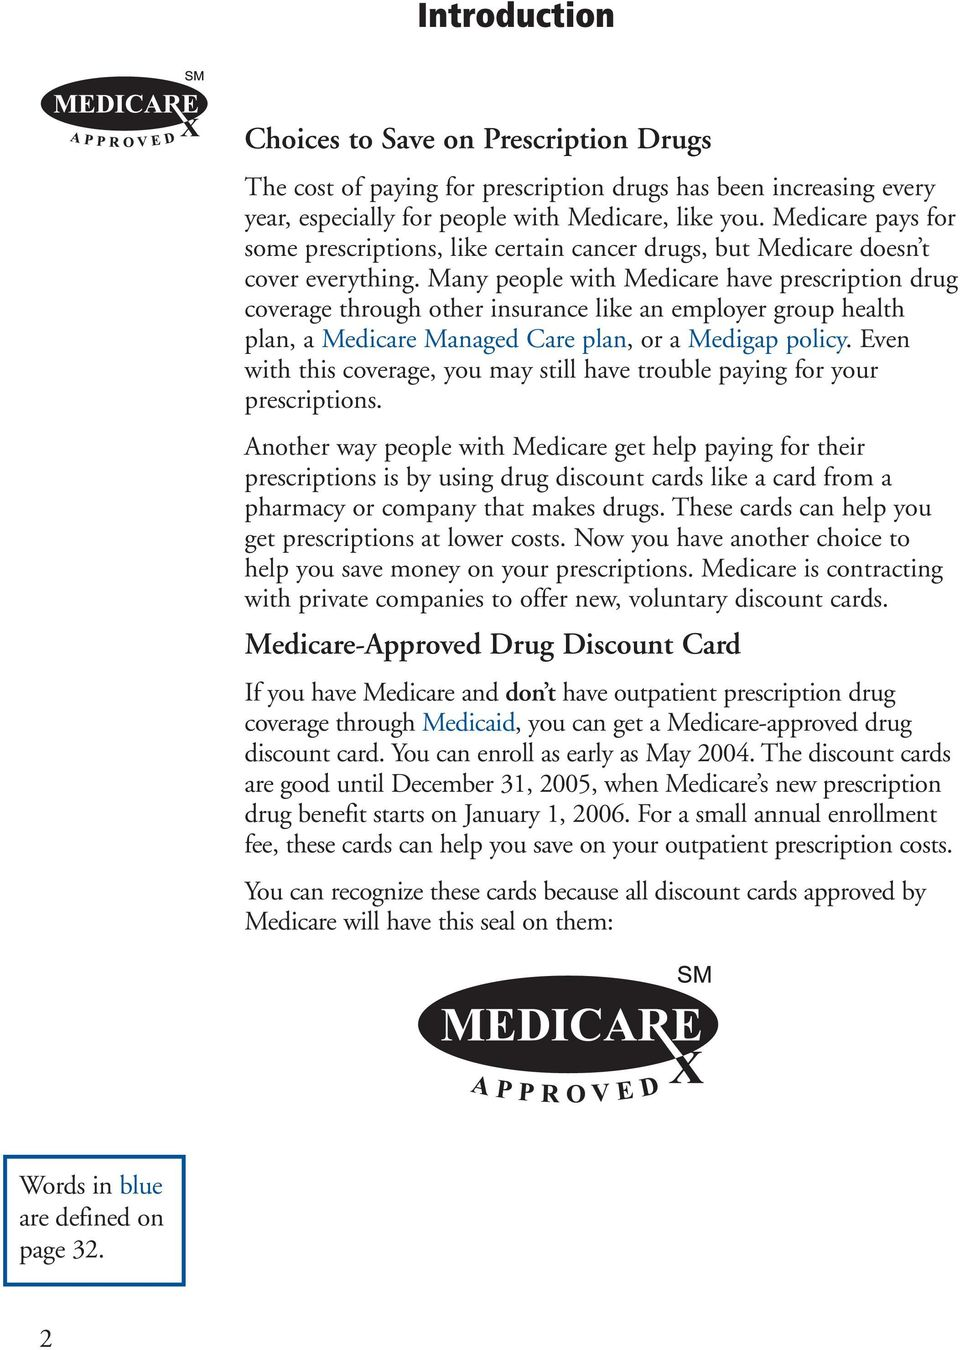 Many people with Medicare have prescription drug coverage through other insurance like an employer group health plan, a Medicare Managed Care plan, or a Medigap policy.